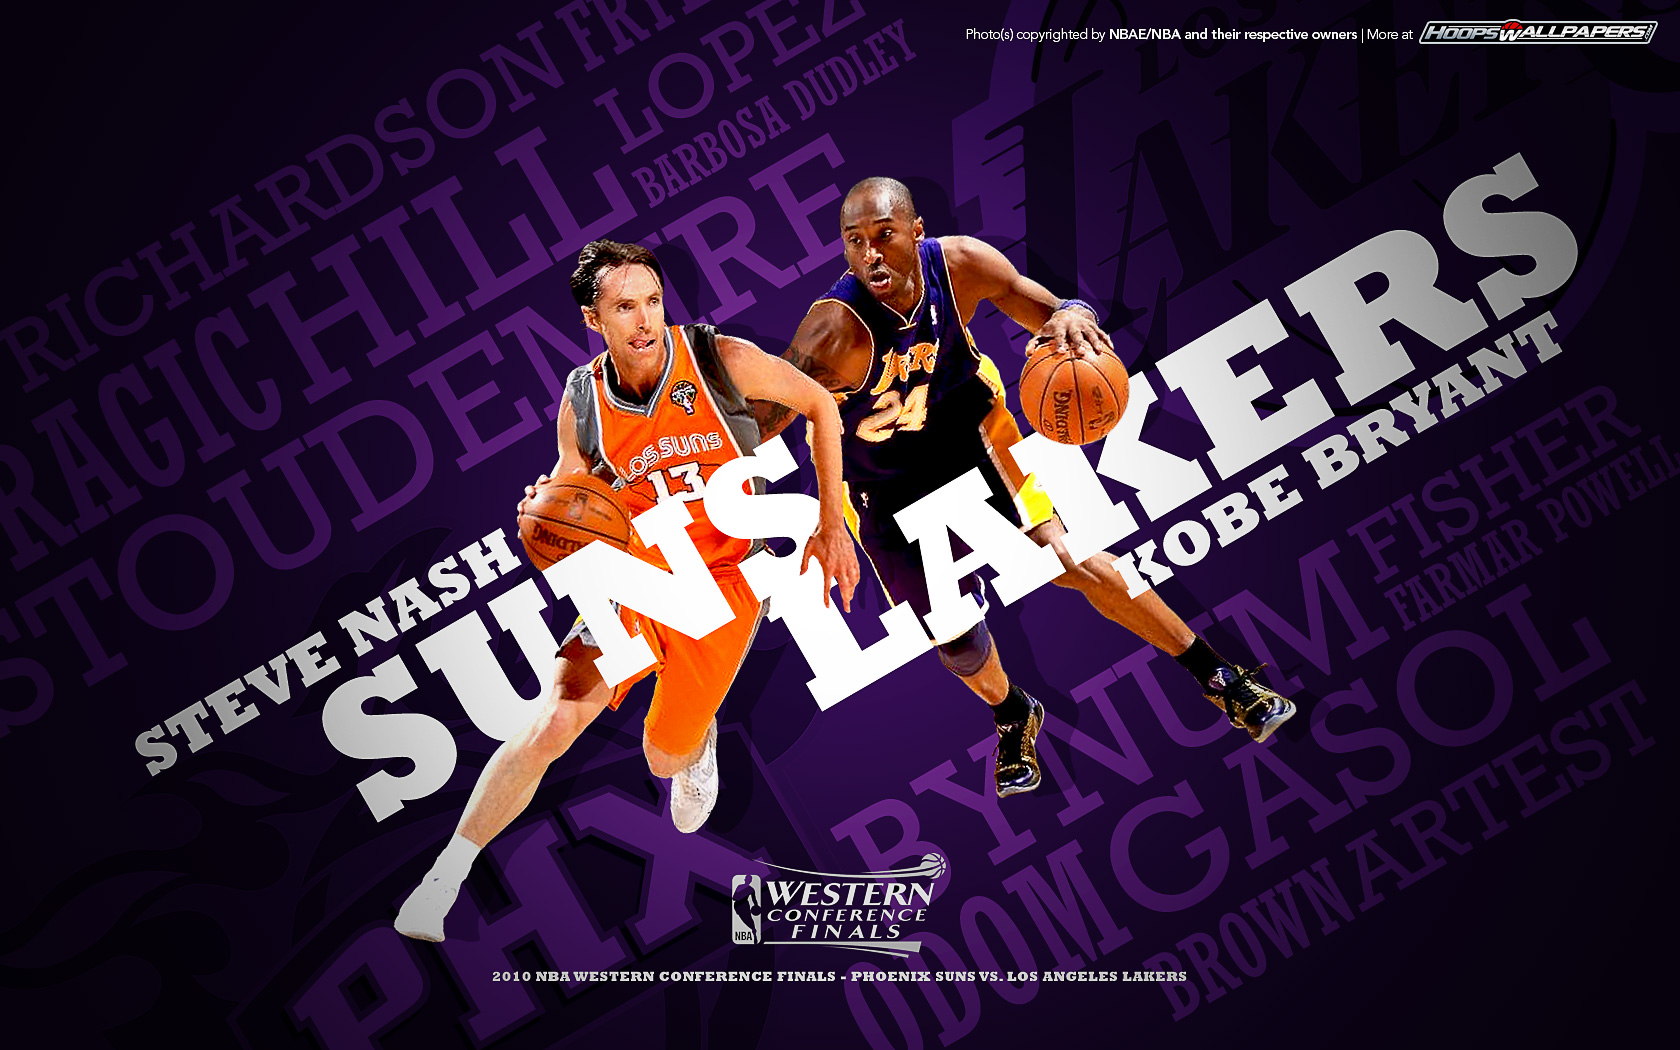 nash-kobe-playoffs-wallpaper-1680x1050.j